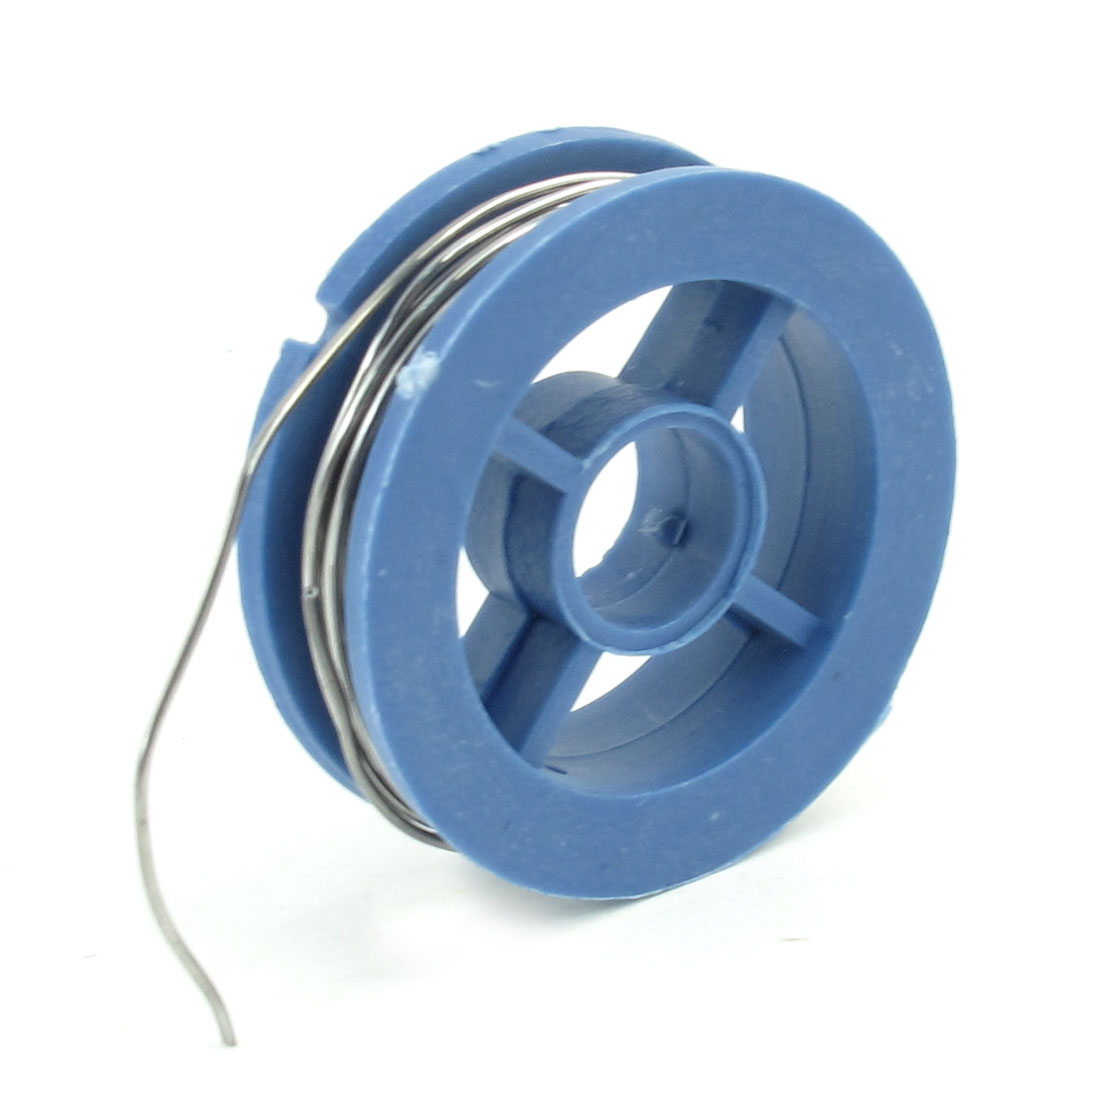 0.8mm Dia 1.8M Length Tin Lead Solder Soldering Wire Reel